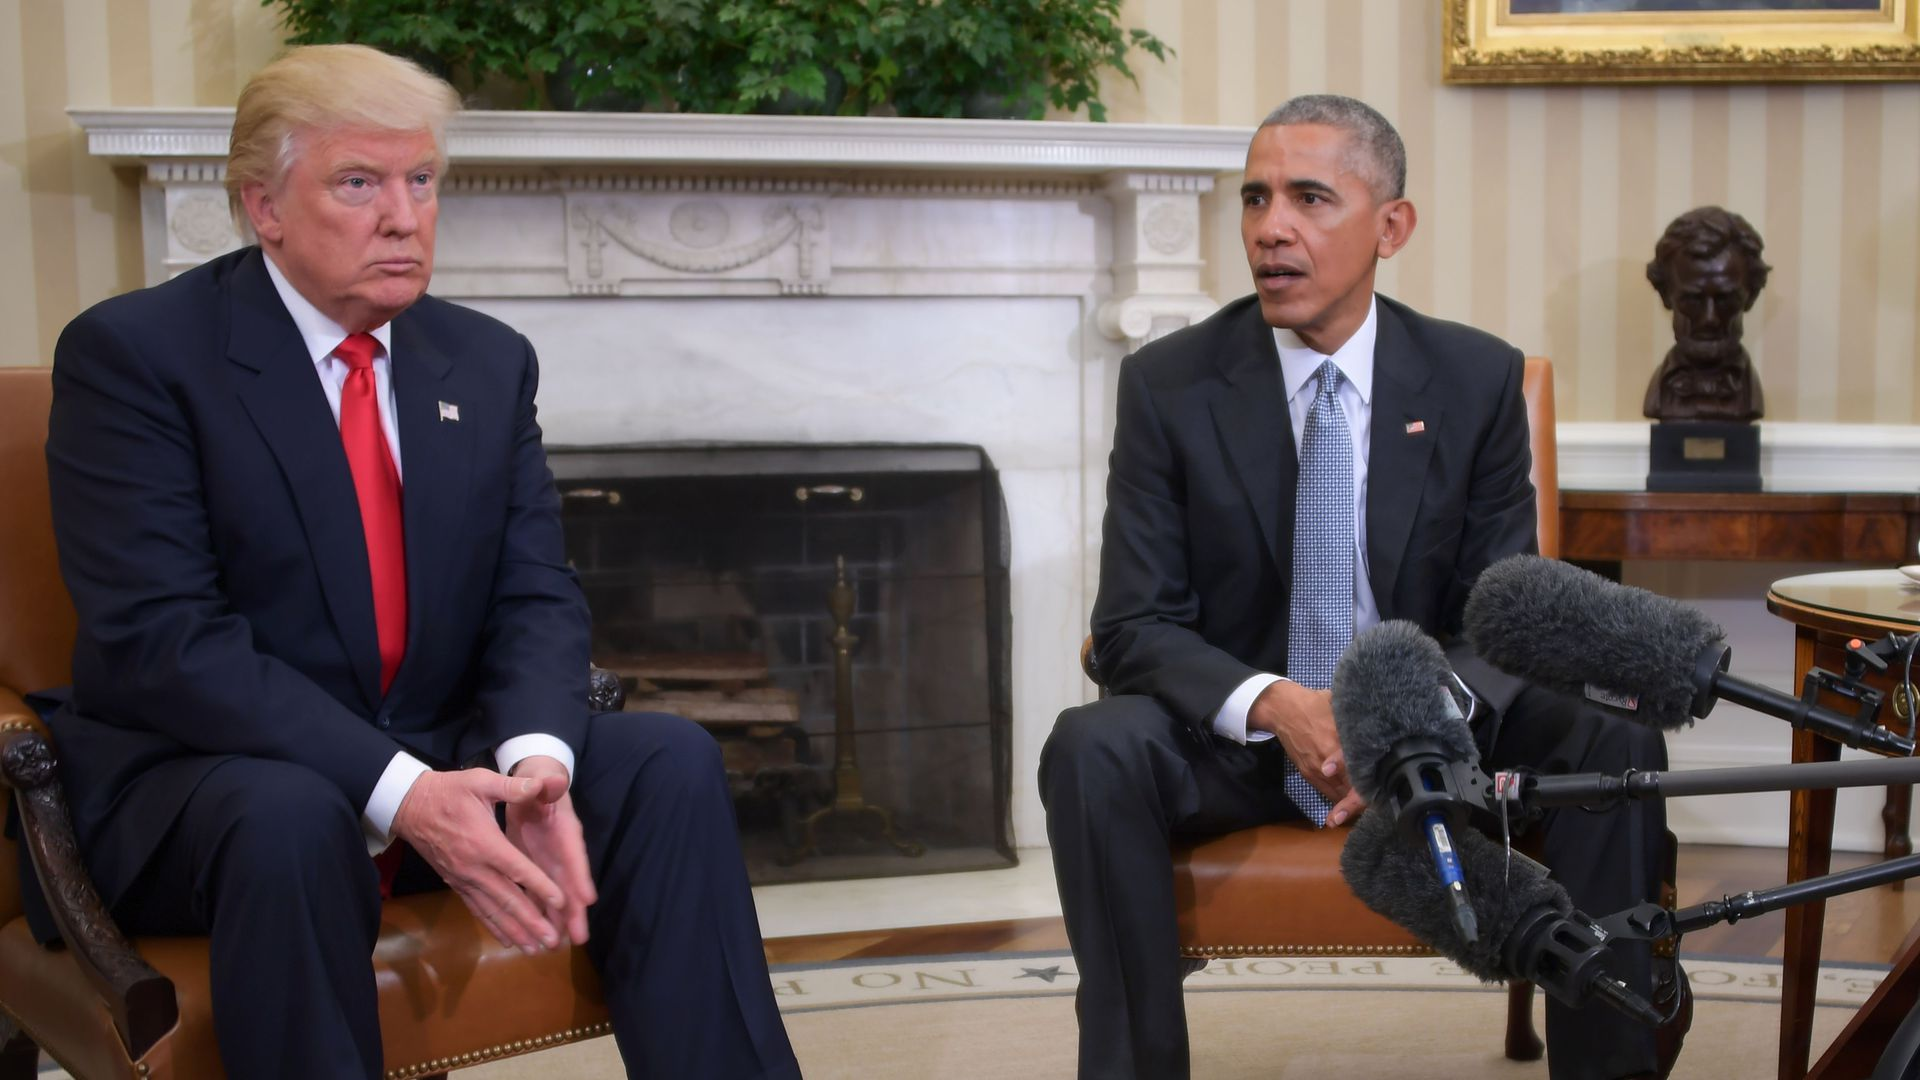 President Barack Obama meets with President-elect Donald Trump to update him on transition planning.